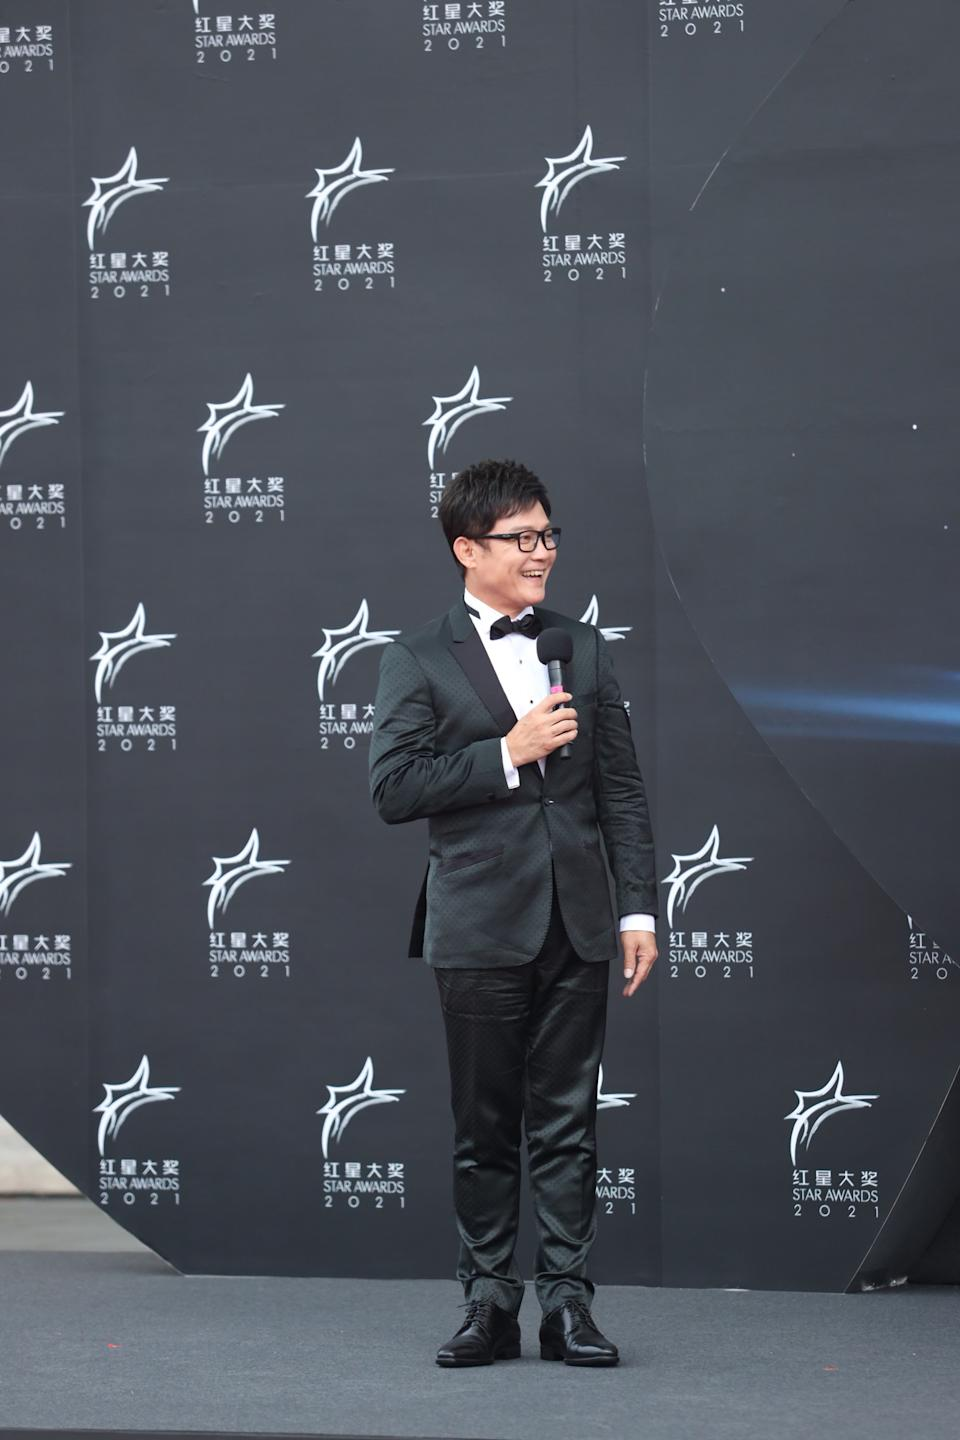 Wang Yu Qing at Star Awards held at Changi Airport on 18 April 2021. (Photo: Mediacorp)